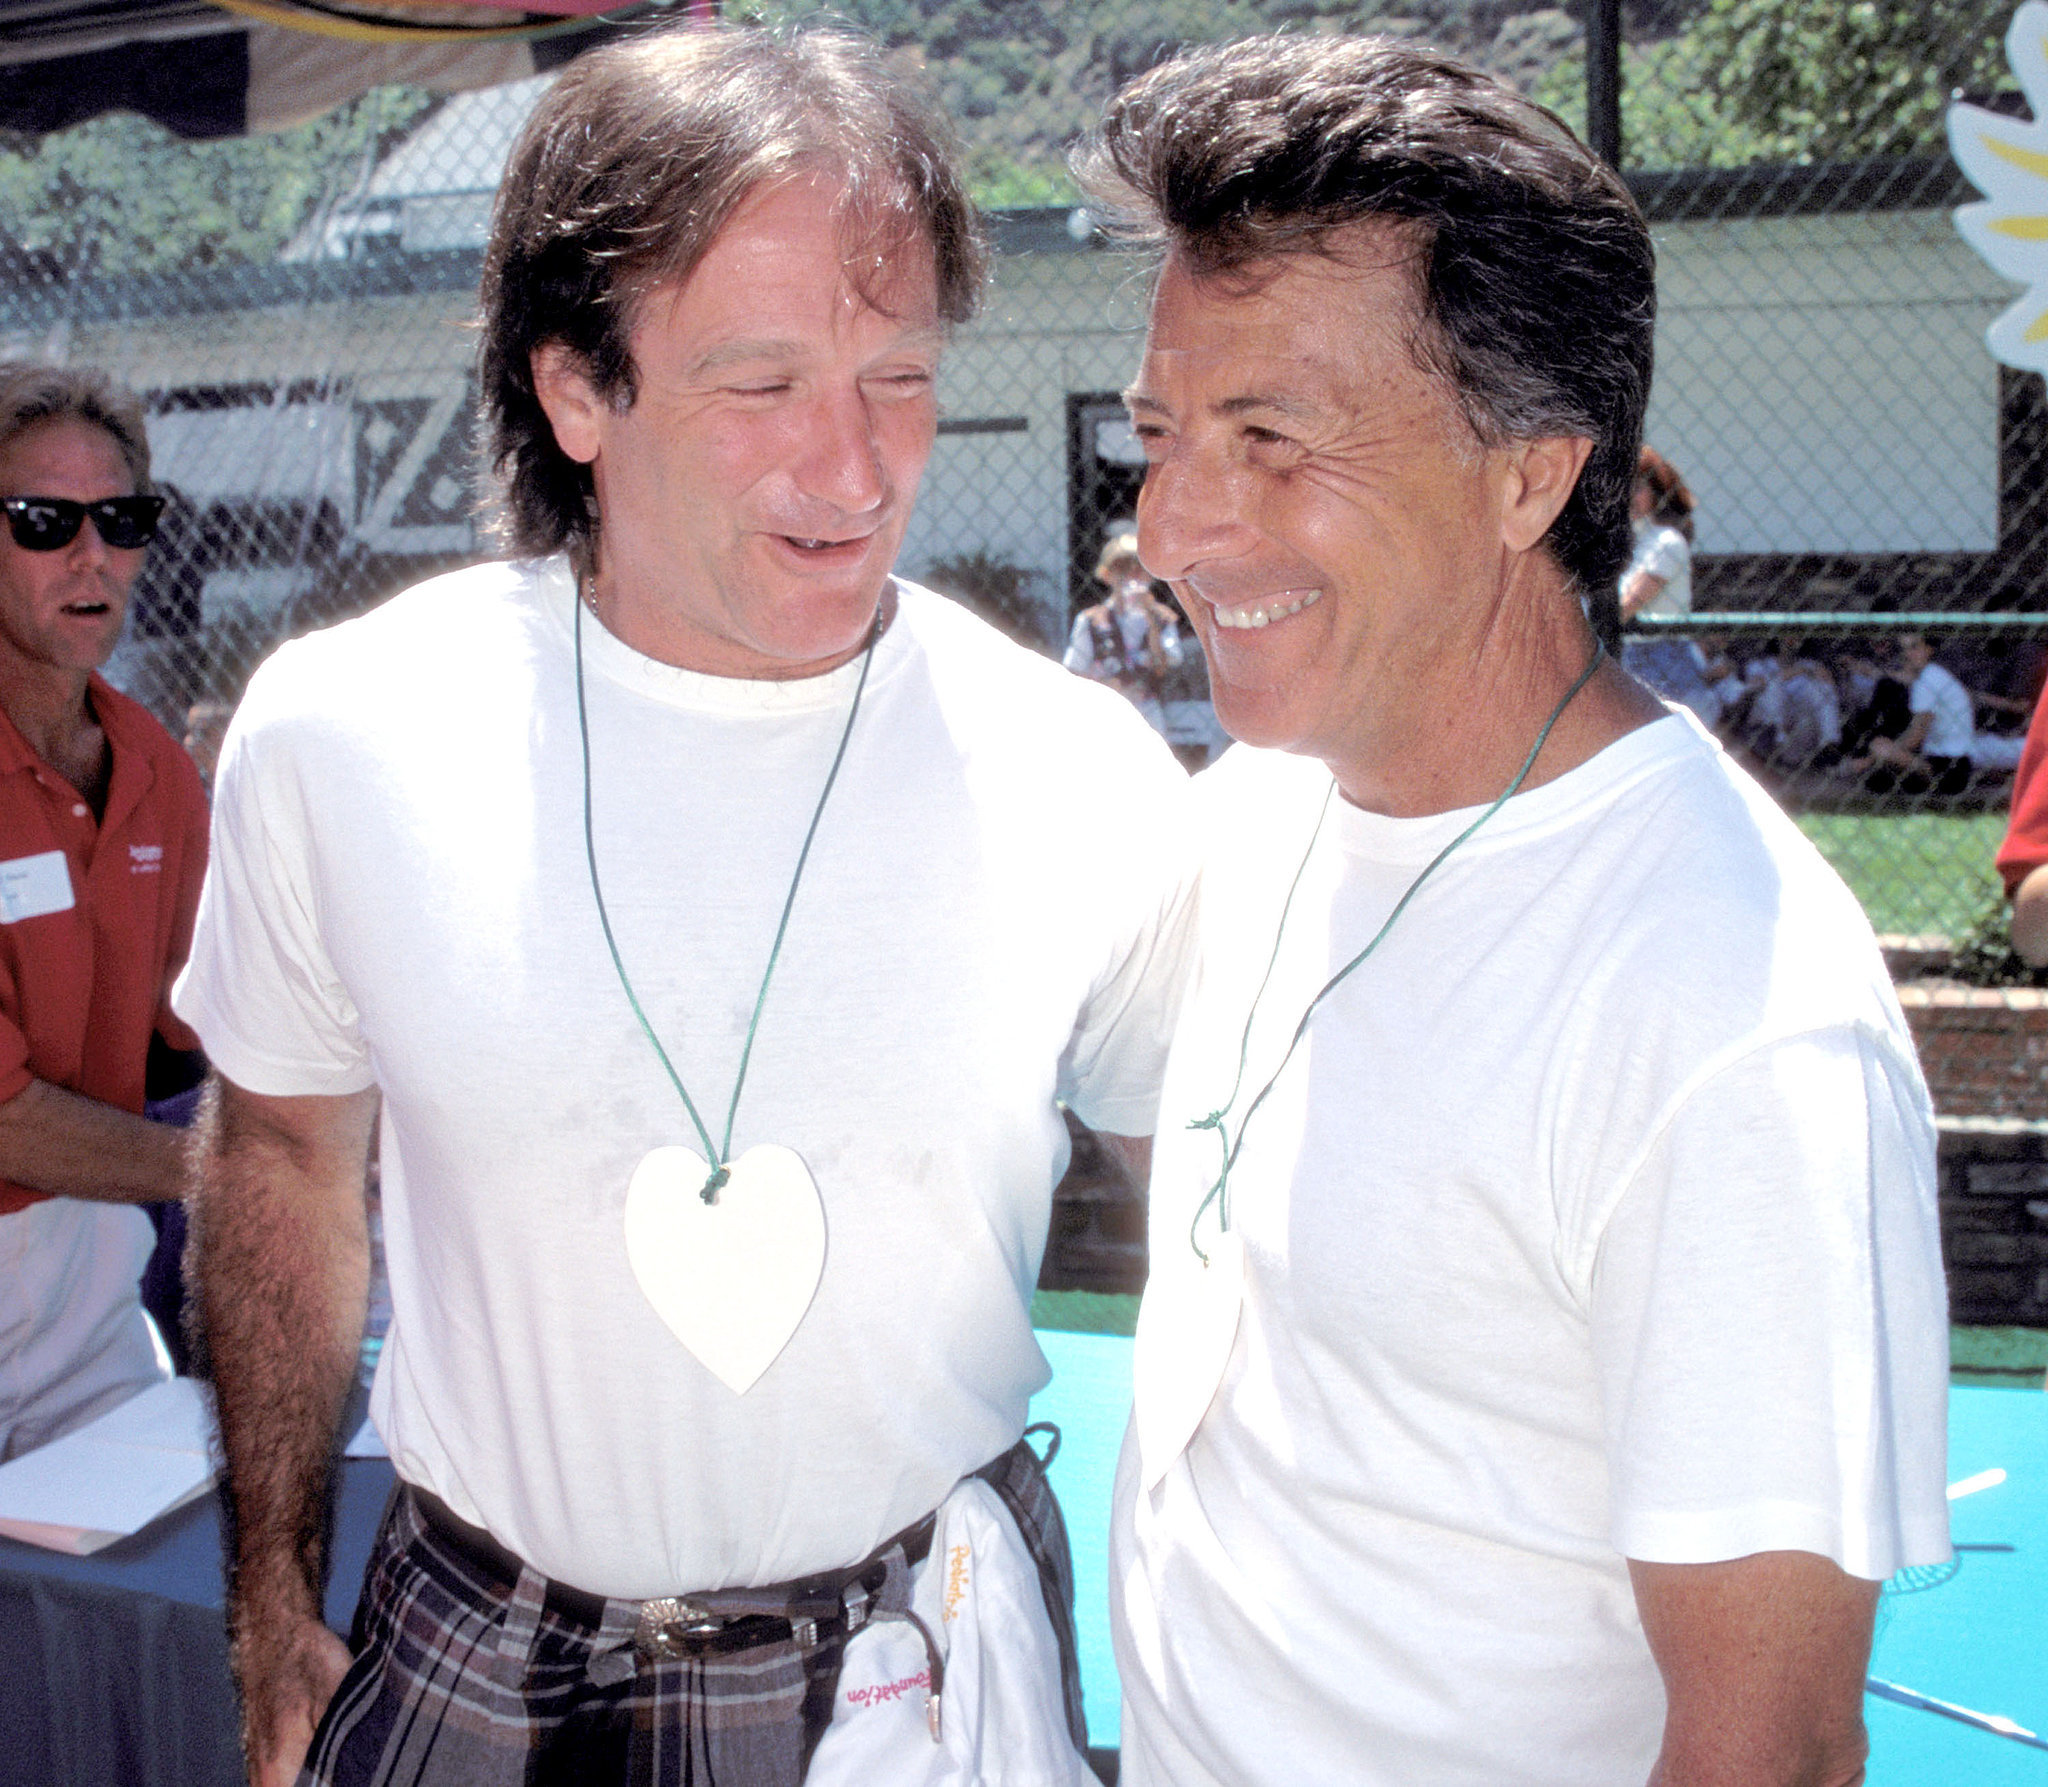 Robin and his Hook costar Dustin Hoffman shared a laugh at the Pediatric Aids Picnic in LA in June 1995.